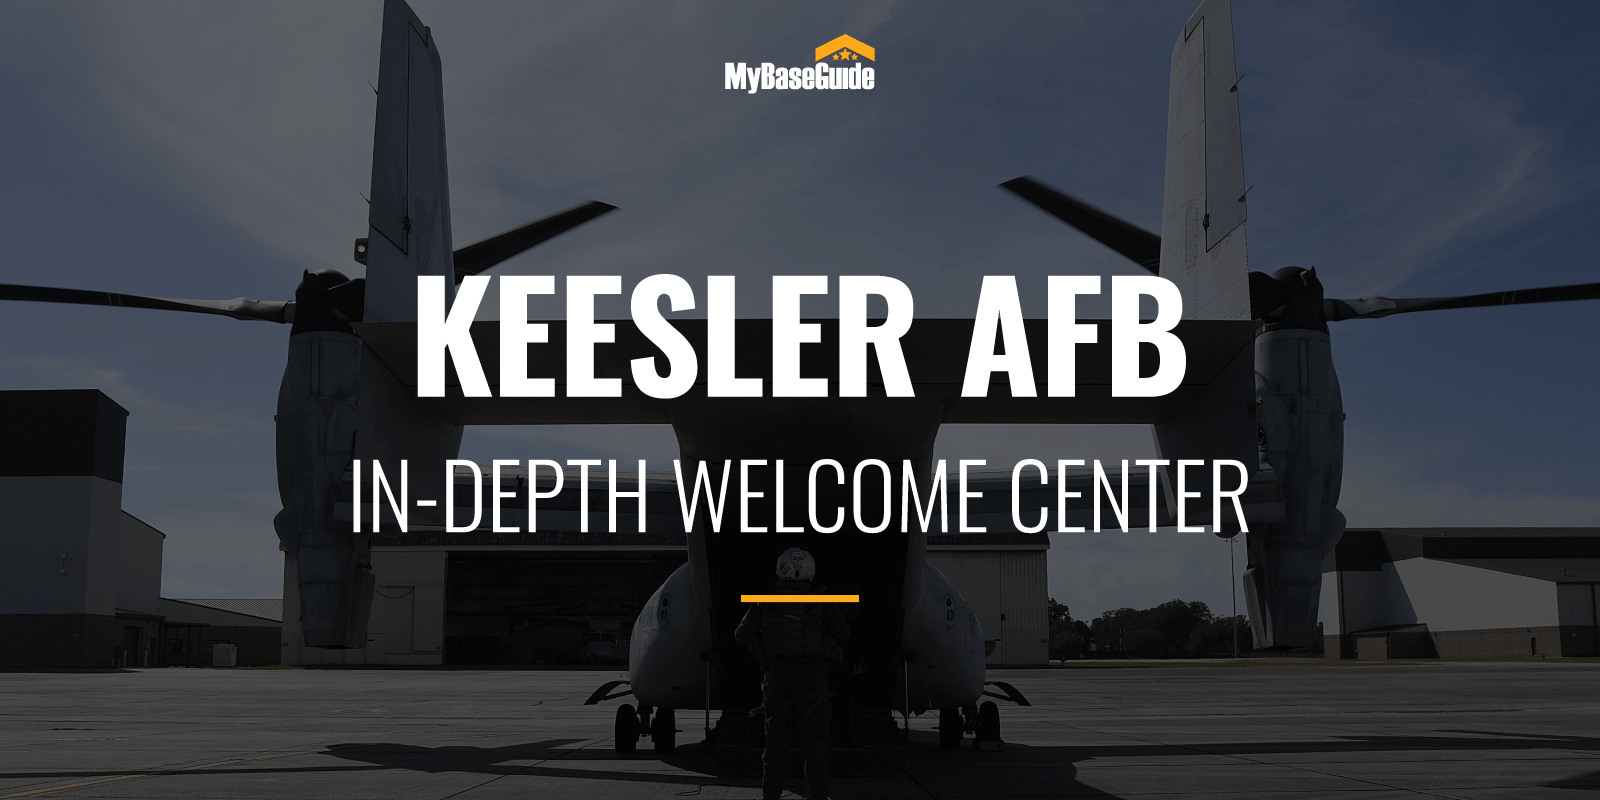 Keesler Air Force Base: In-Depth Welcome Center